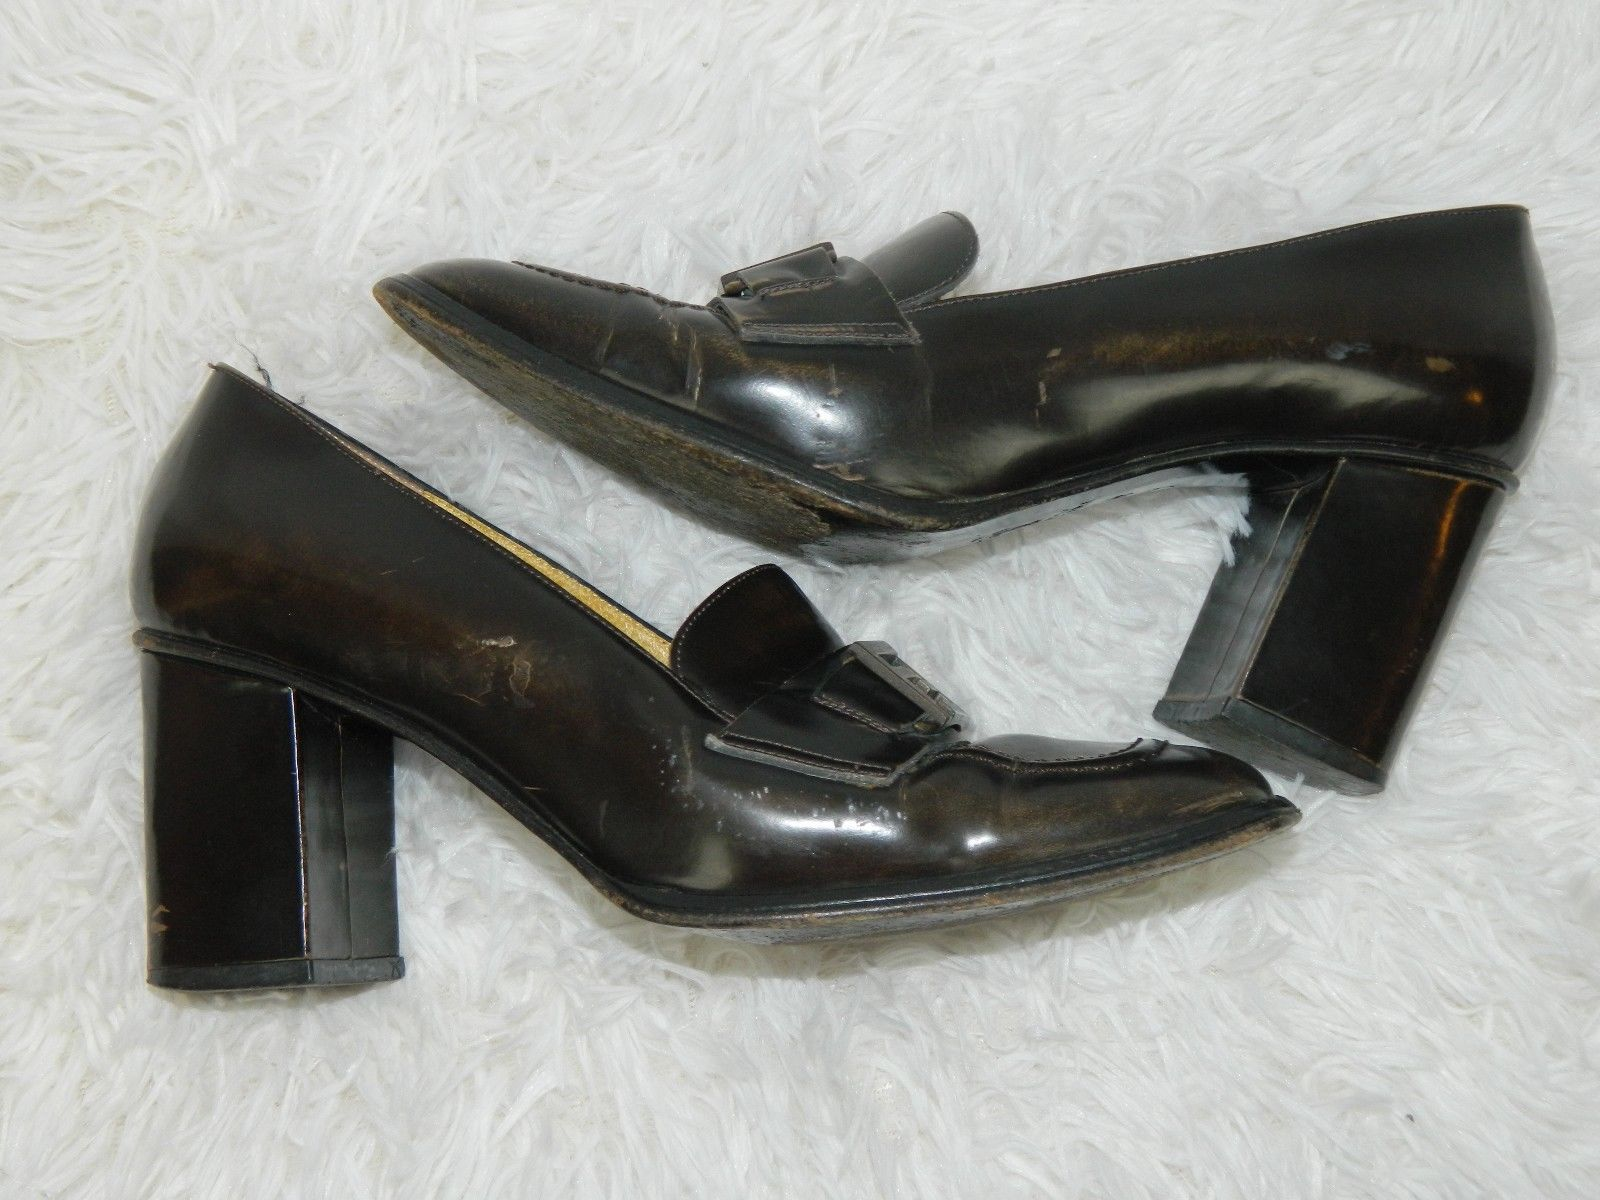 953e884b86ad Fendi Womens Shoes Distressed Brown Vintage and 35 similar items. S l1600